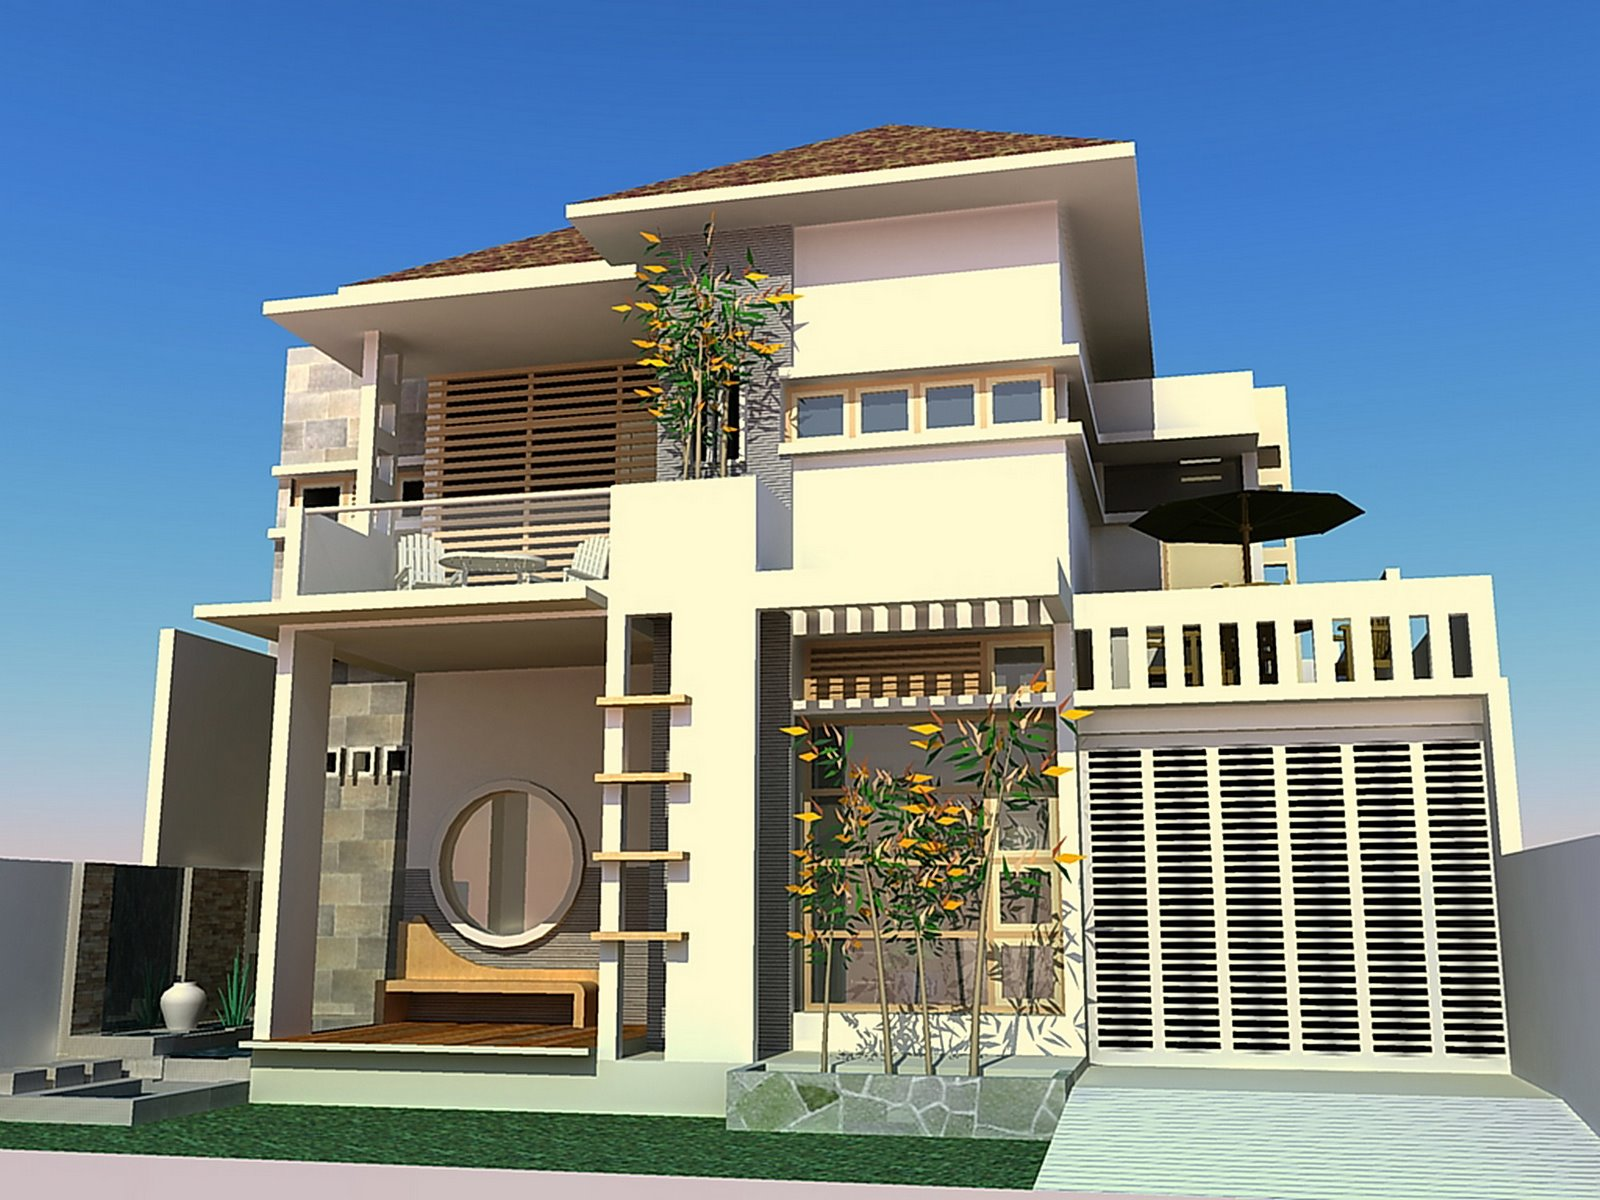 House design property external home design interior for House front design